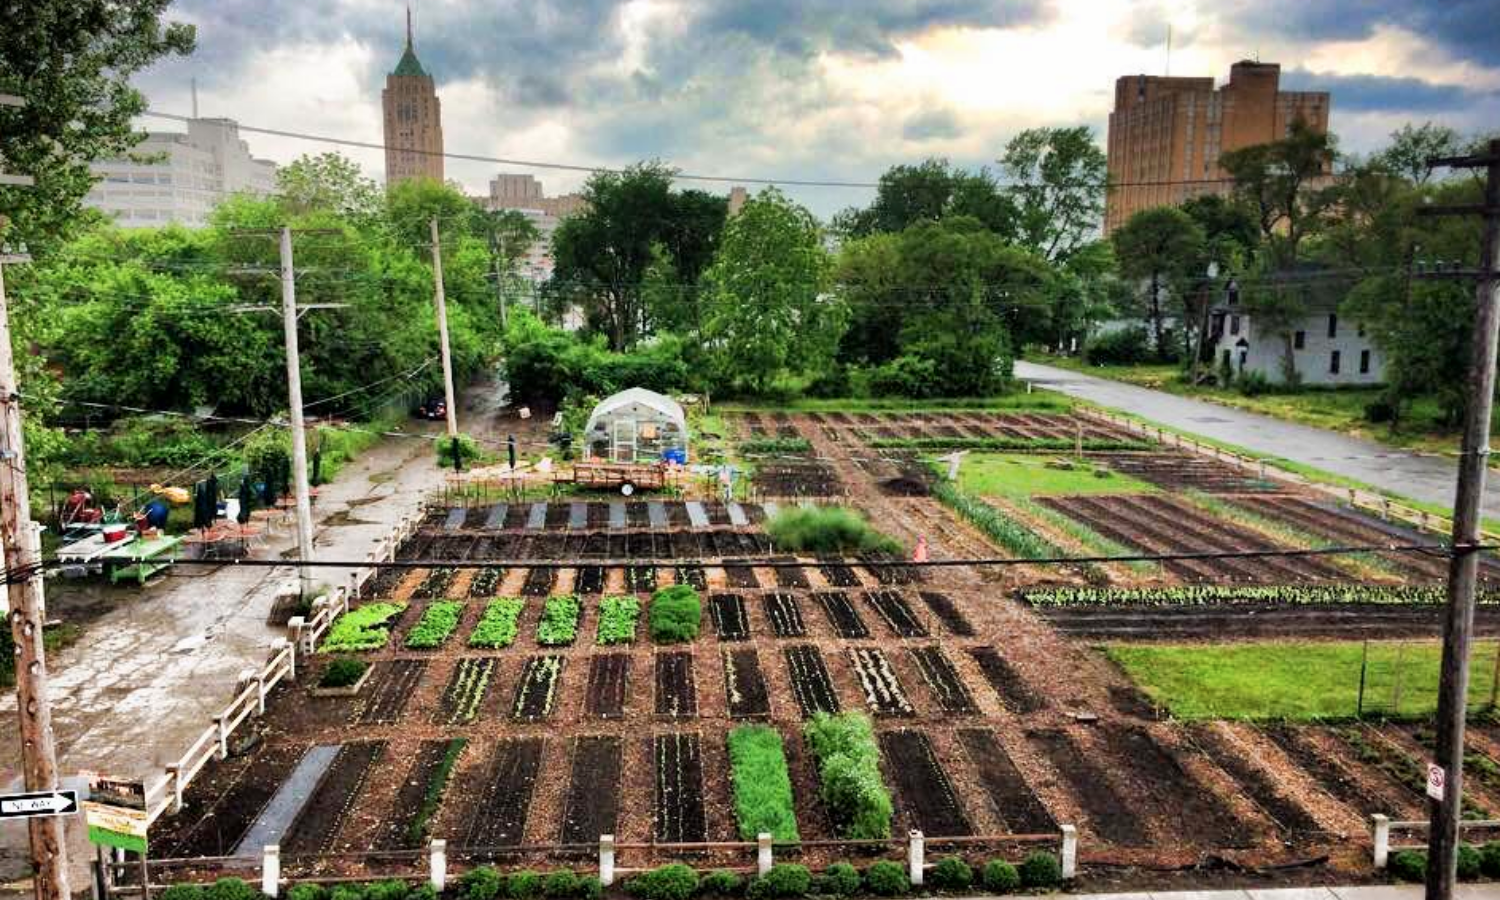 The Food And Agriculture Organization Of The United Nations Fao Defines Urban Agriculture As The Growing Of Plan Urban Agriculture Urban Farming Agriculture